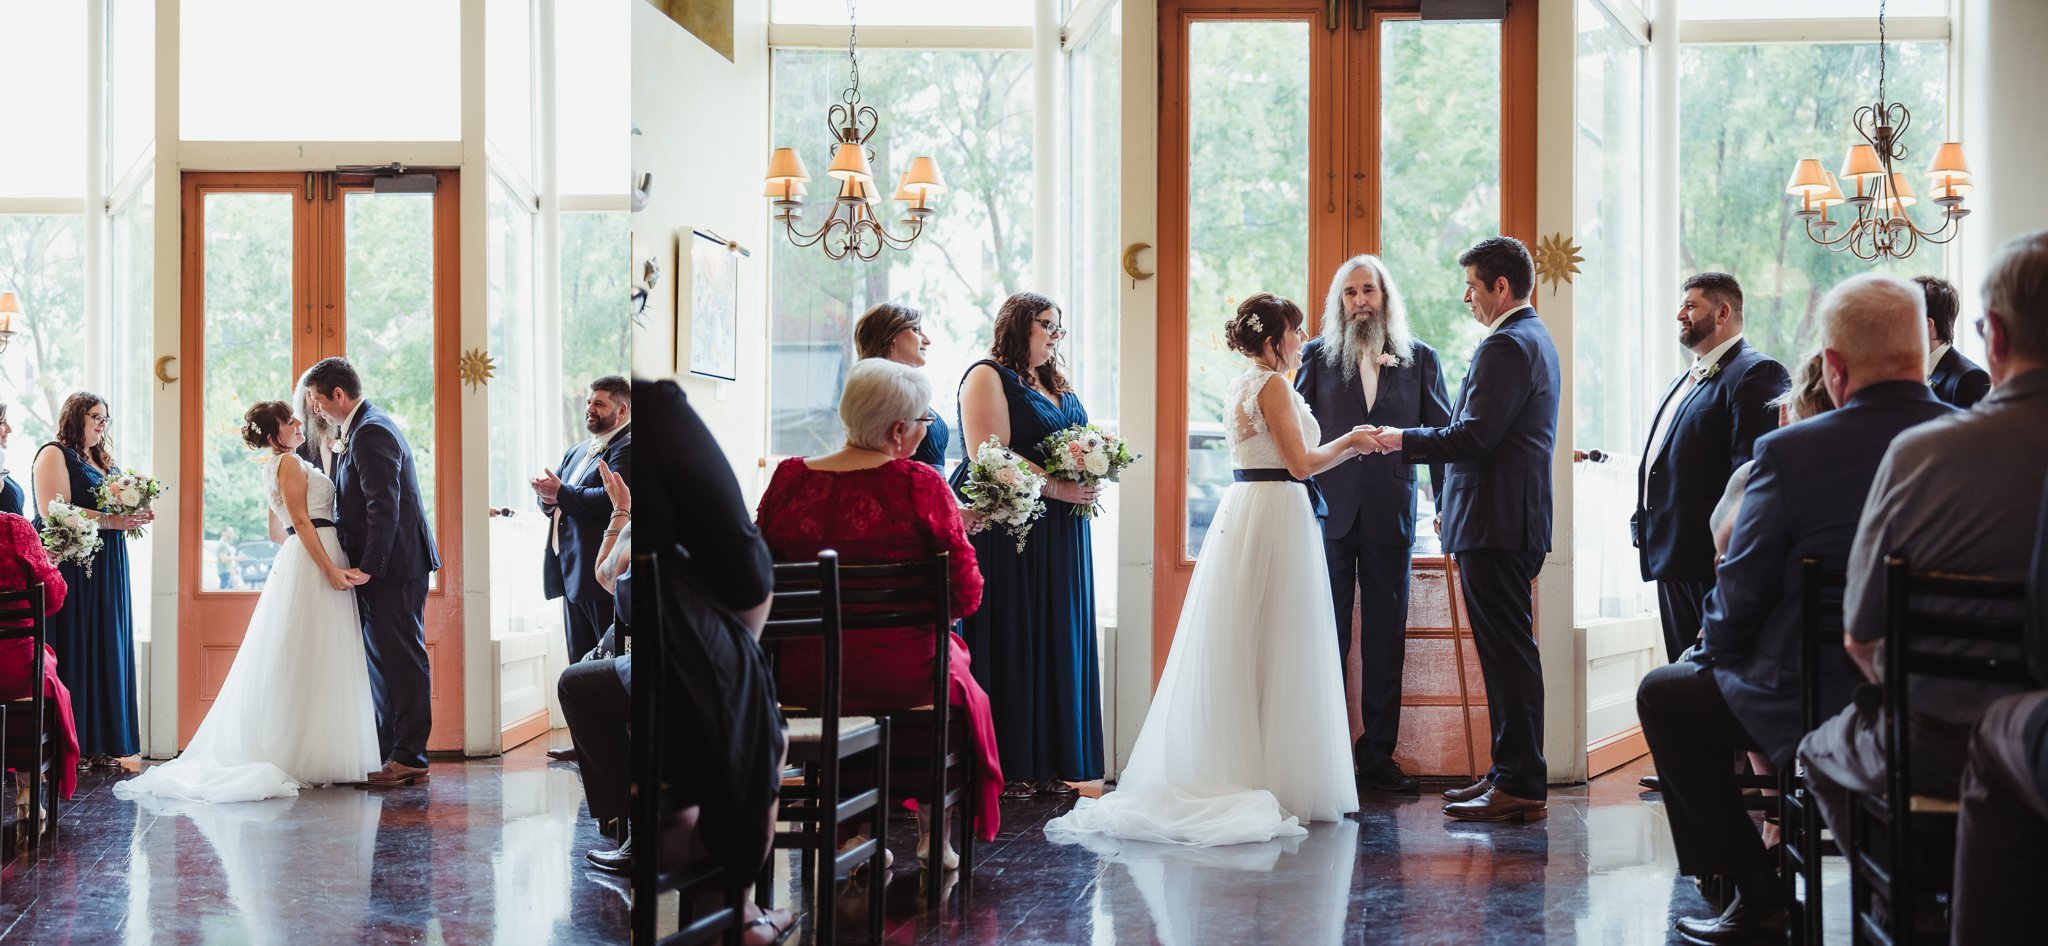 The bride and groom exchanged vows during their wedding ceremony, pictures taken by Rose Trail Images at Caffe Luna in Raleigh, NC.